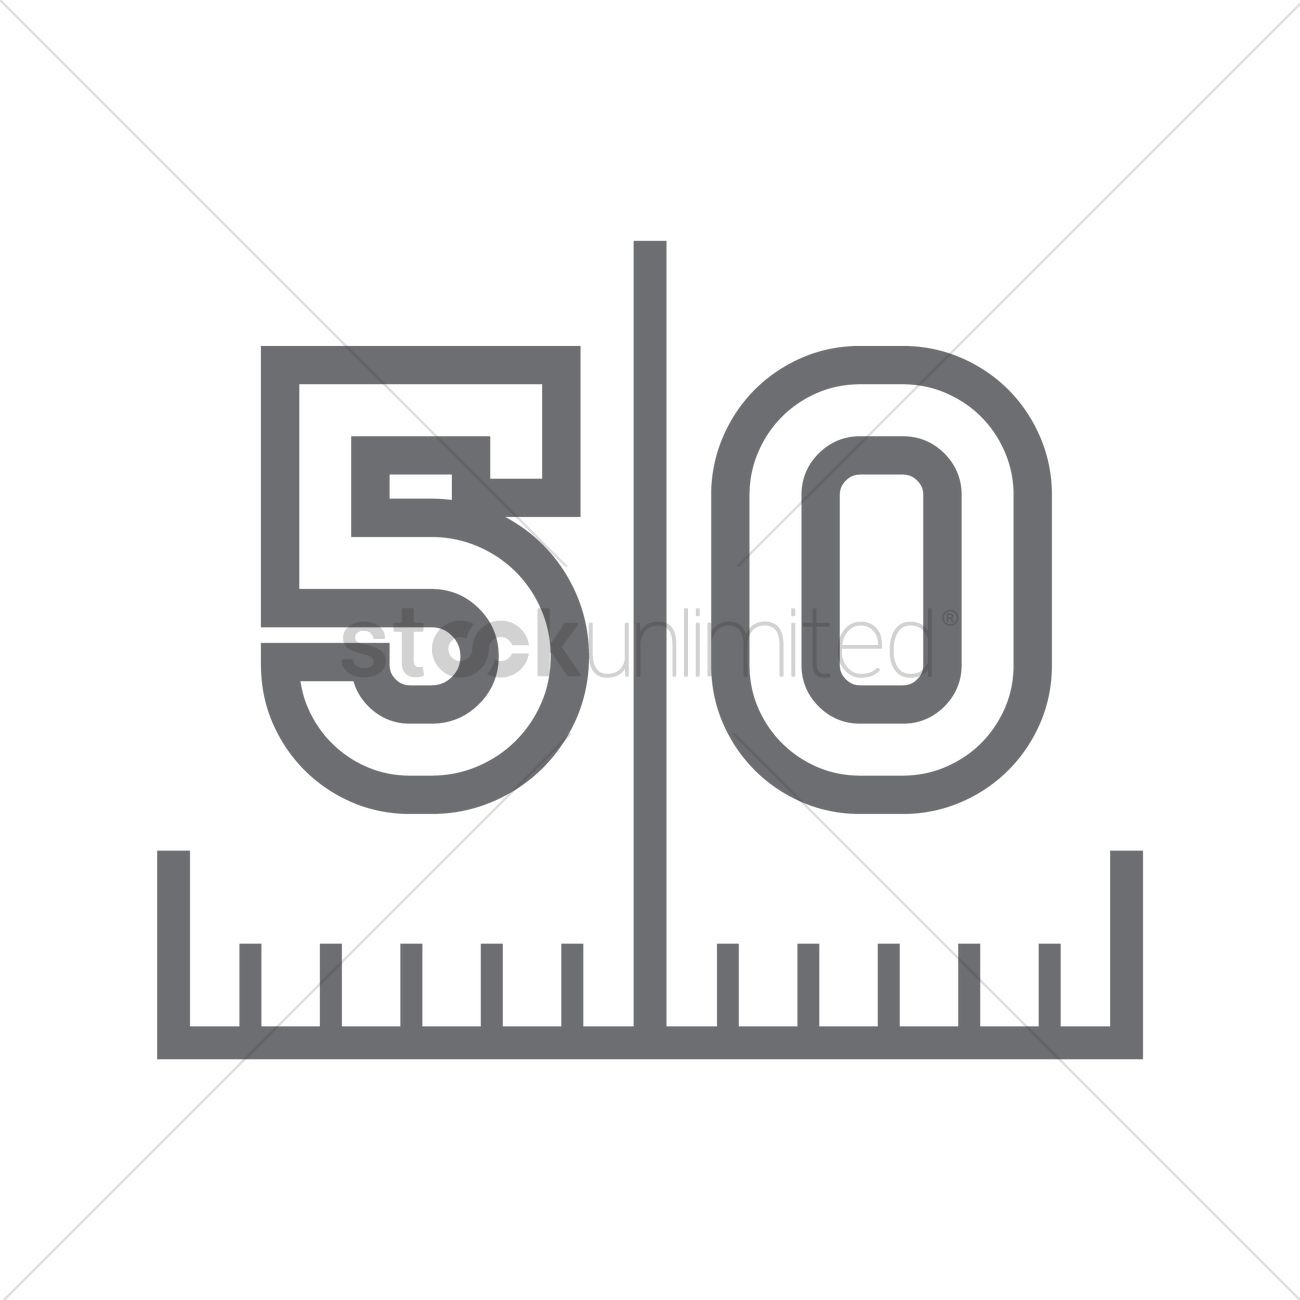 50 Yard Line On American Football Field Vector Image 1983584